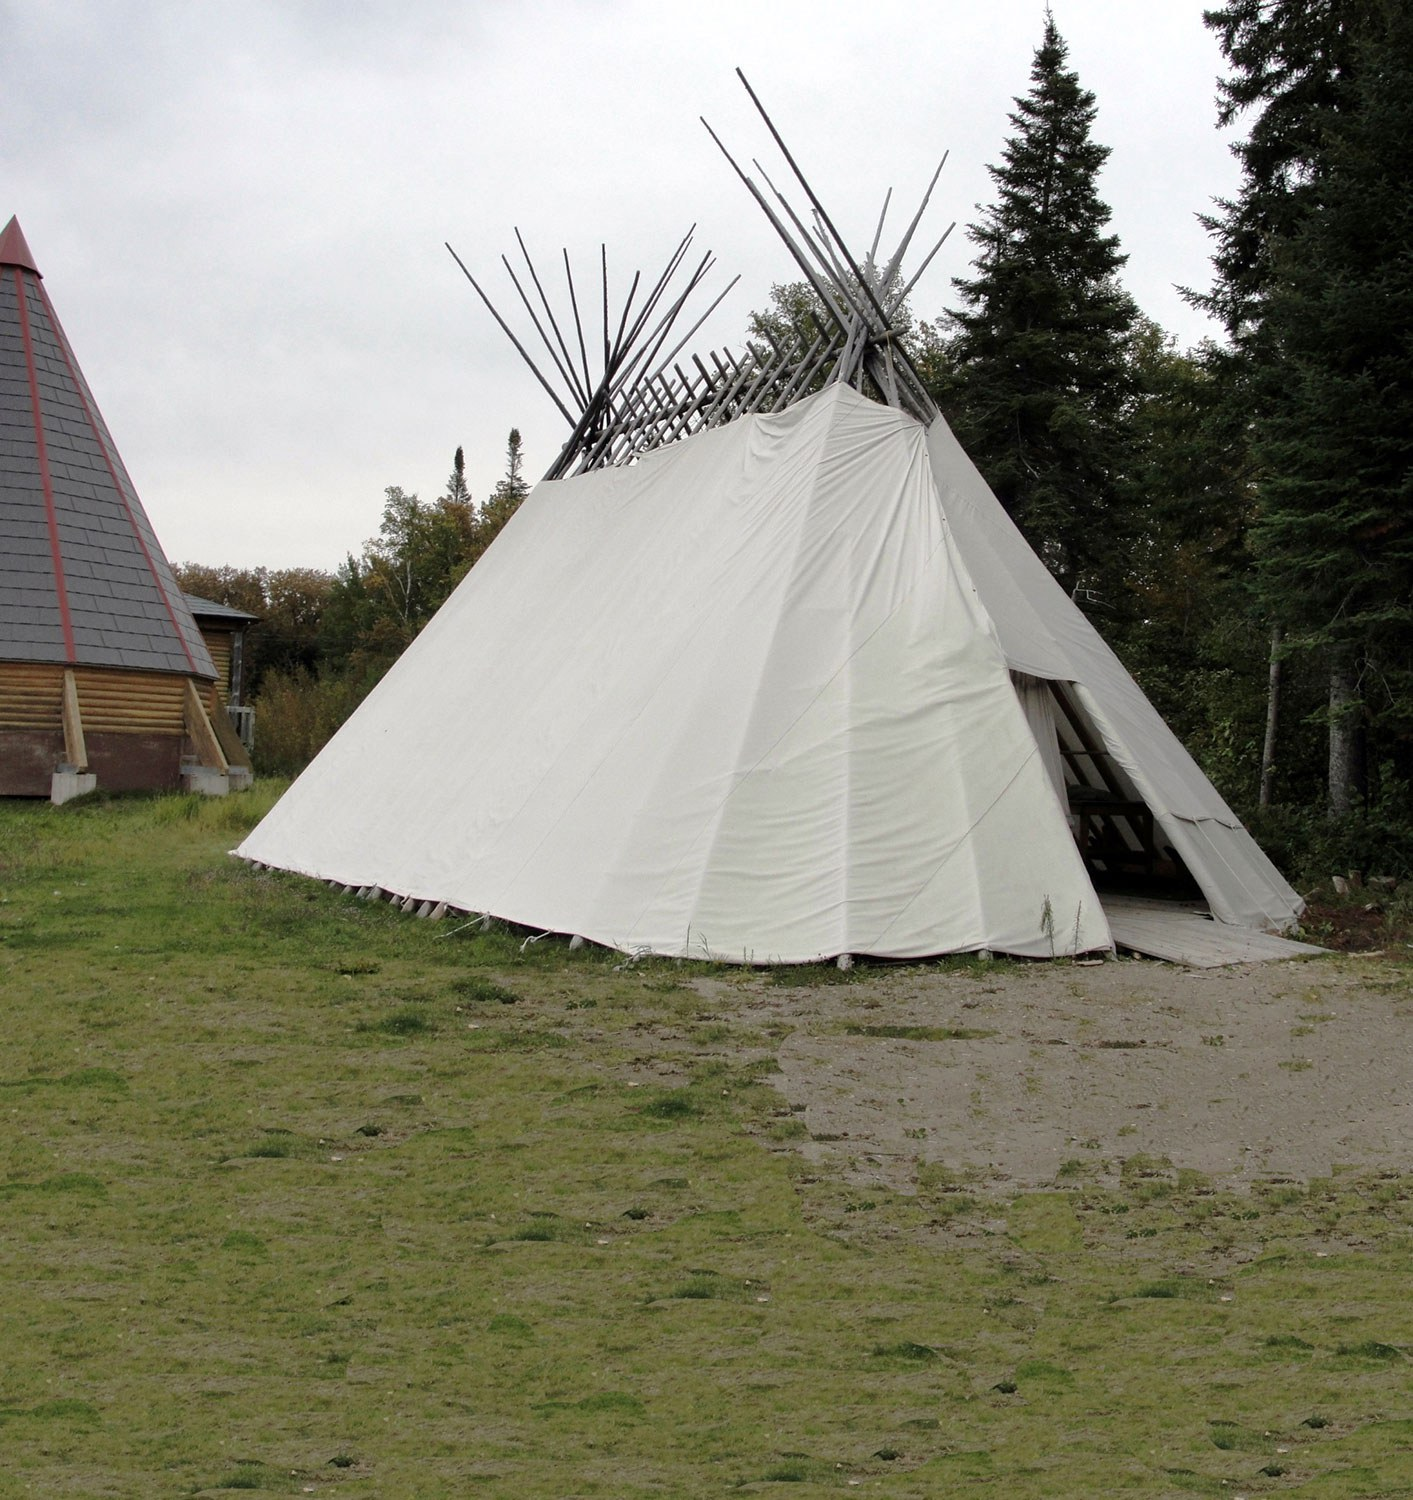 A sabtuan (traditional Cree shelter) in Moose Factory.